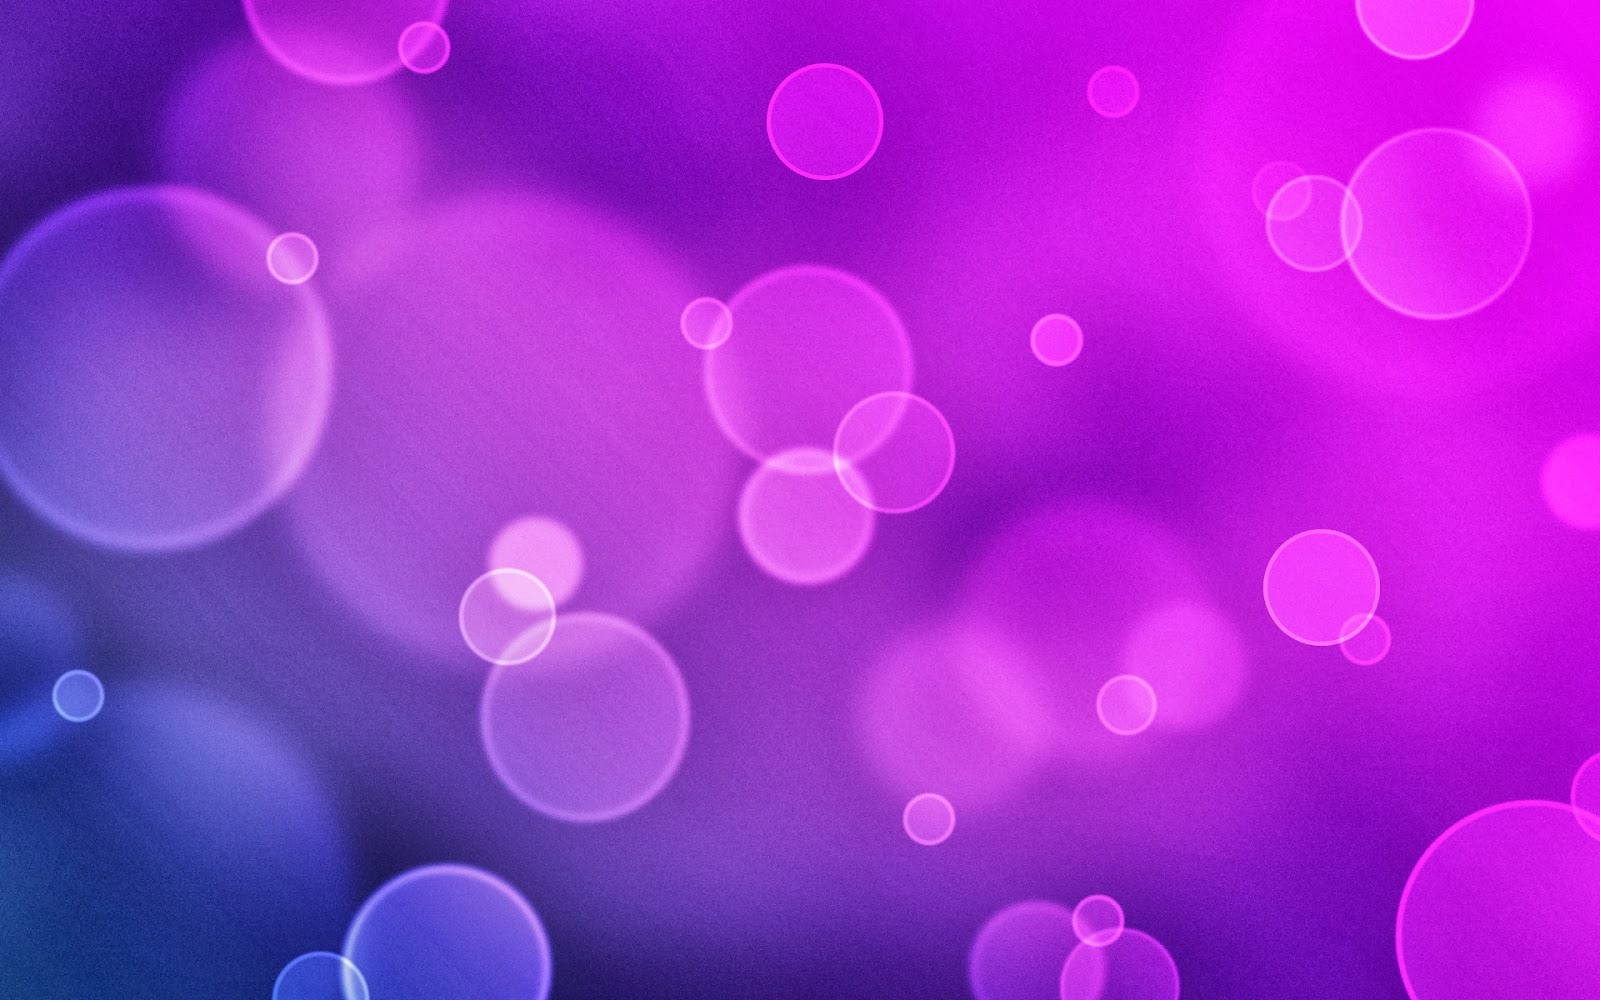 purple background images 1600x1000